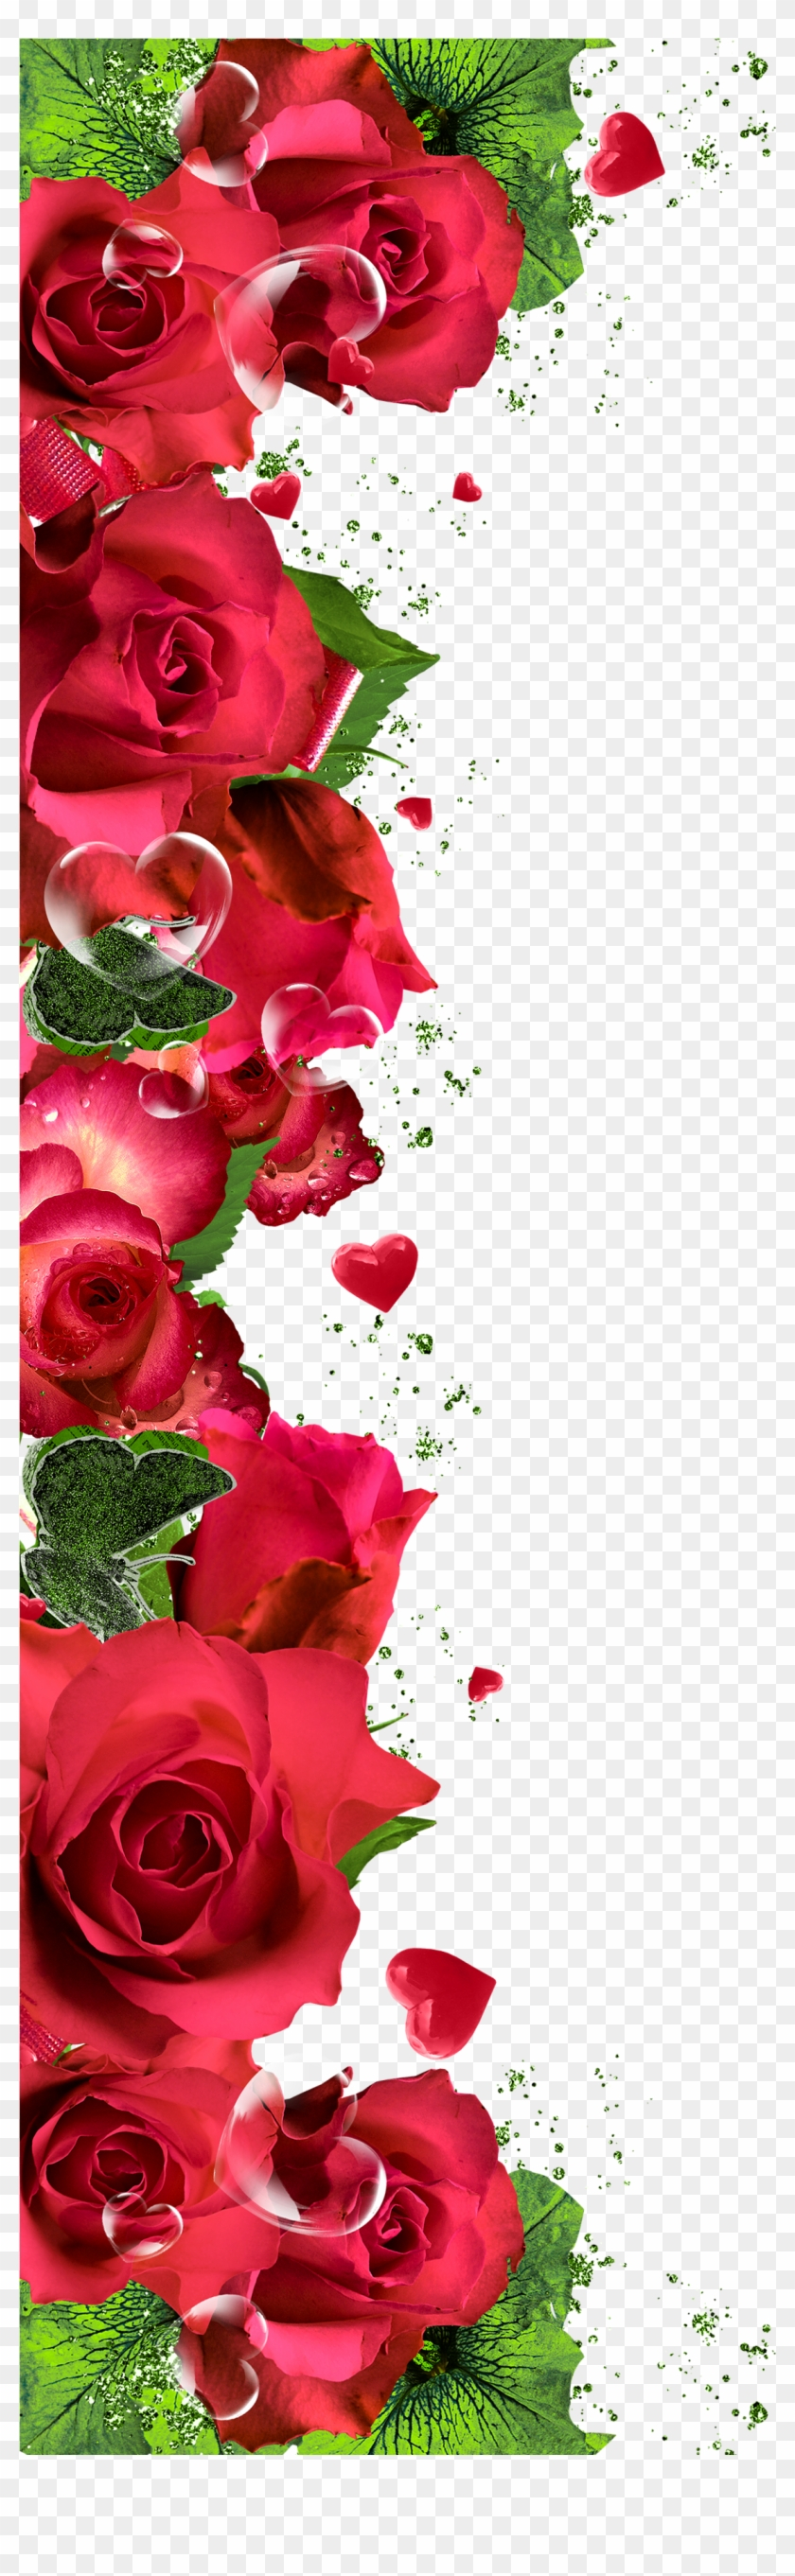 Wallpaper Patterns Backgrounds Iphone Wallpapers Rose Flower Border Png